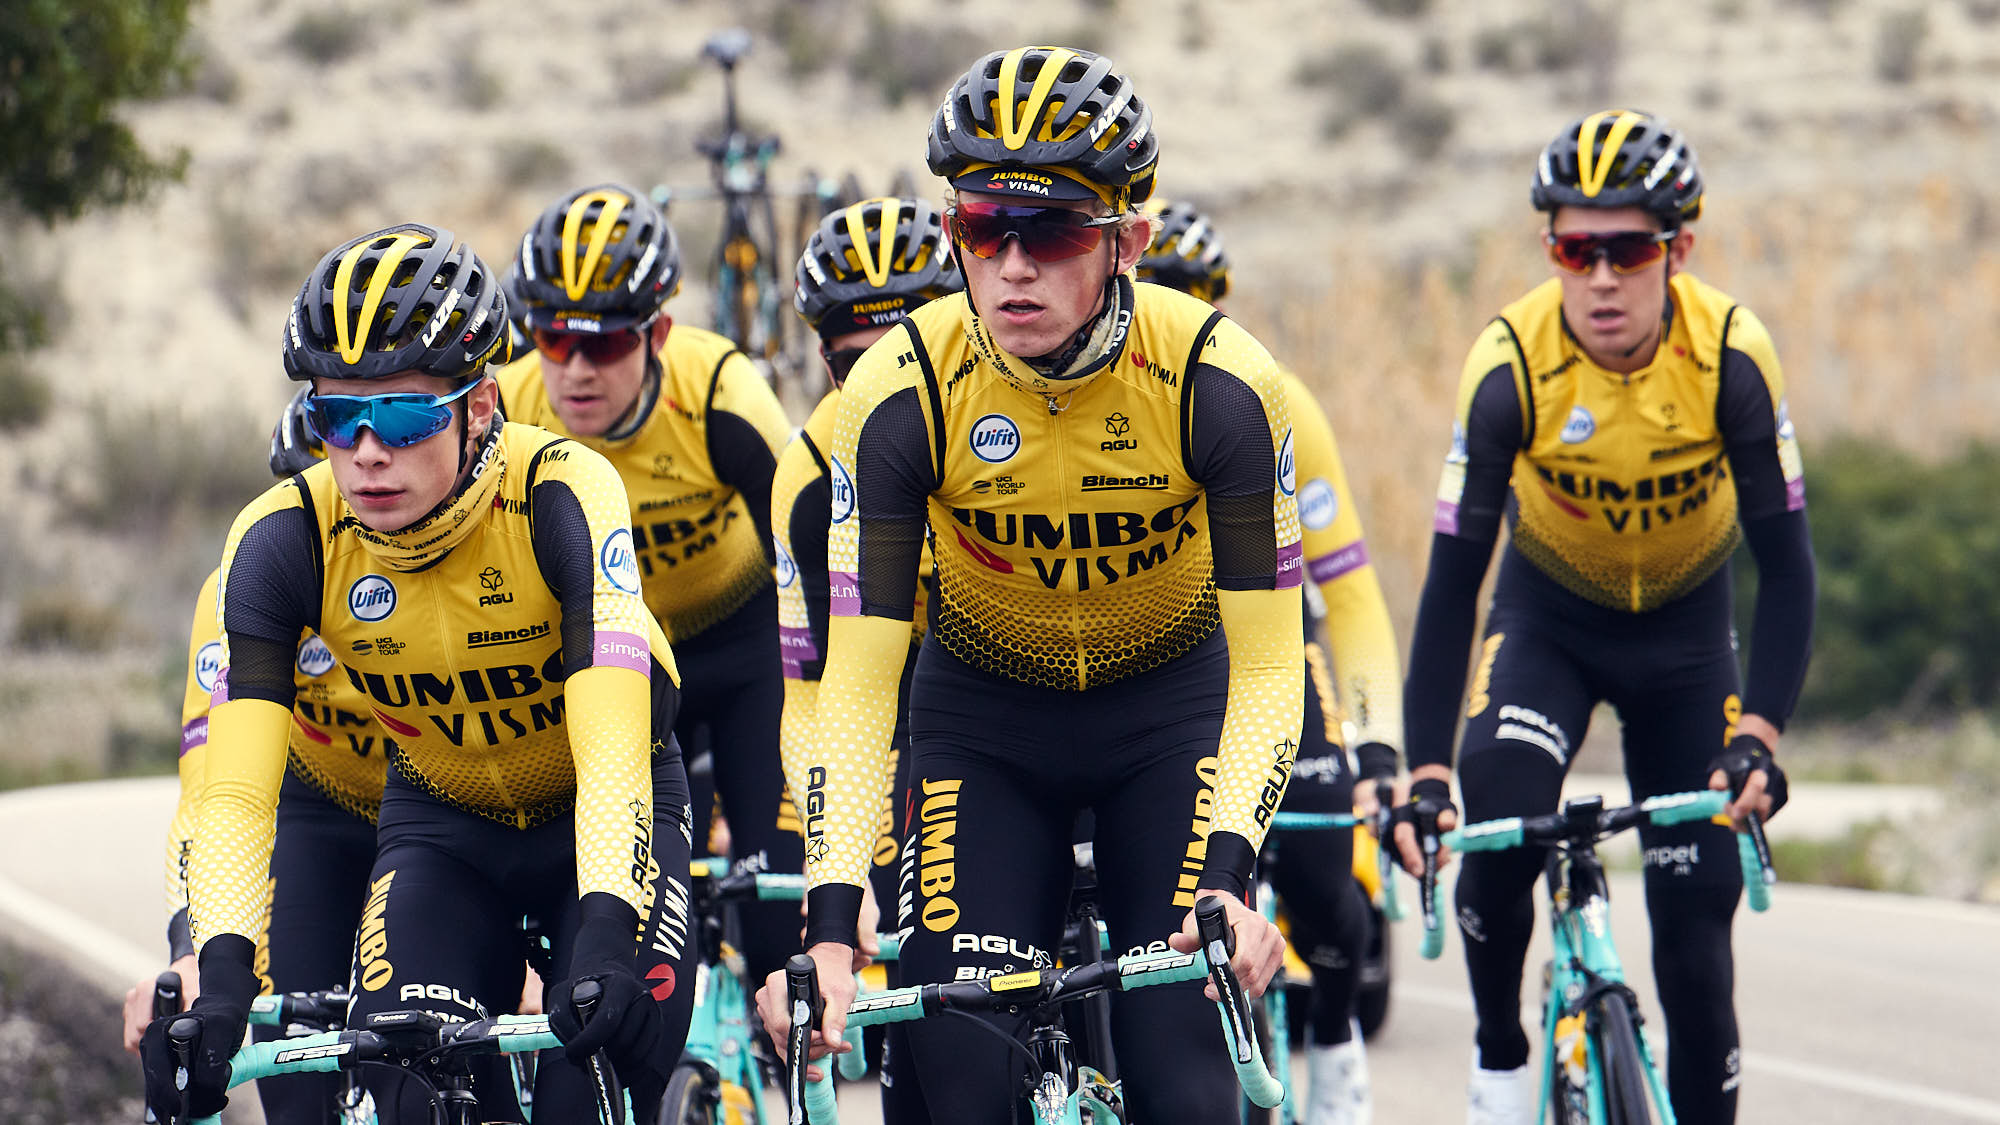 Jumbo-Visma rider Koen Bouwman training in Alicante